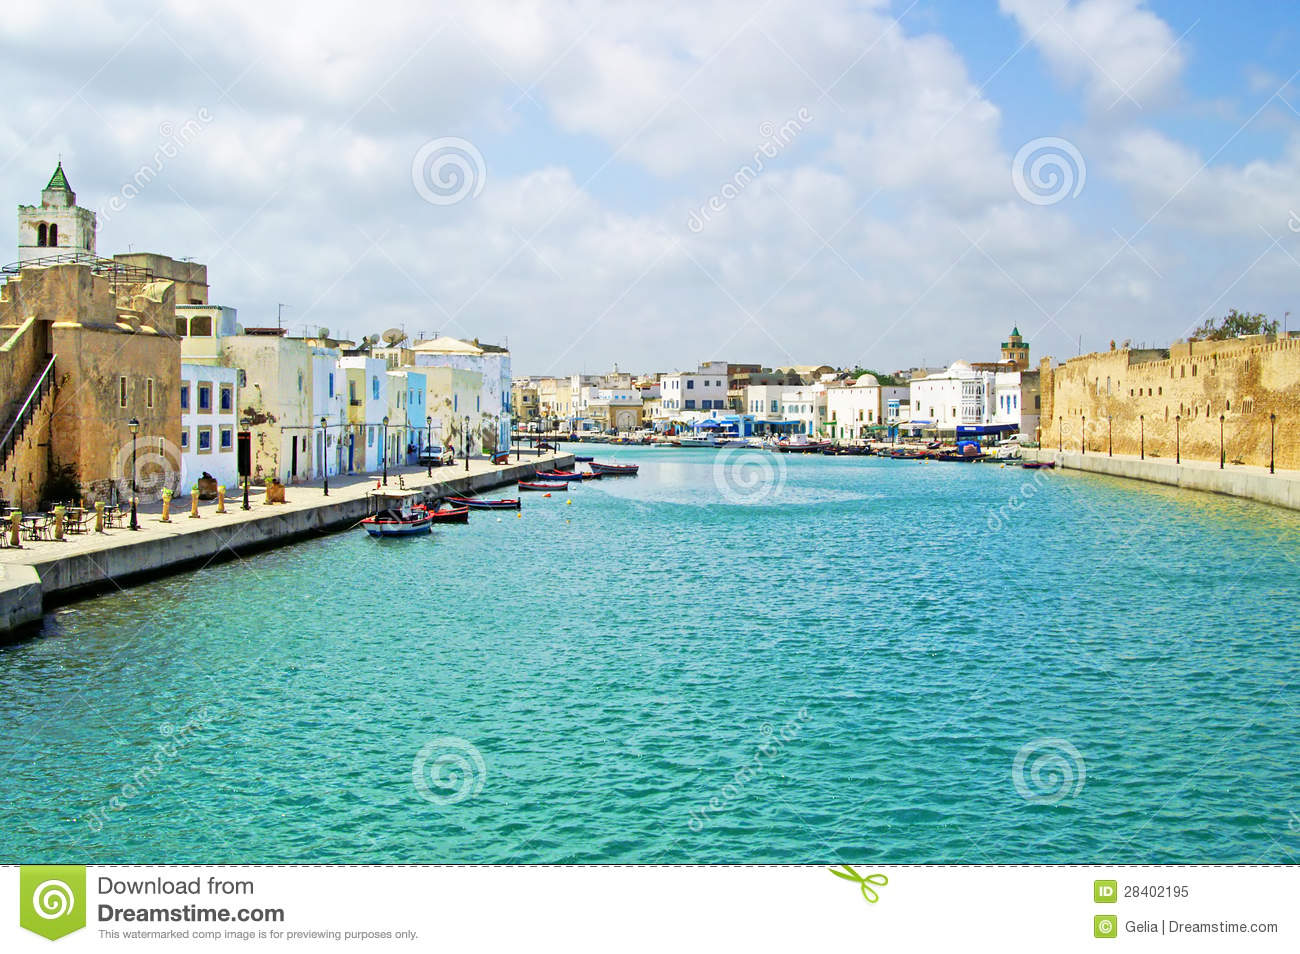 Bizerte Tunisia  City pictures : Fort Of Bizerte, Tunisia Royalty Free Stock Photo Image: 28402195